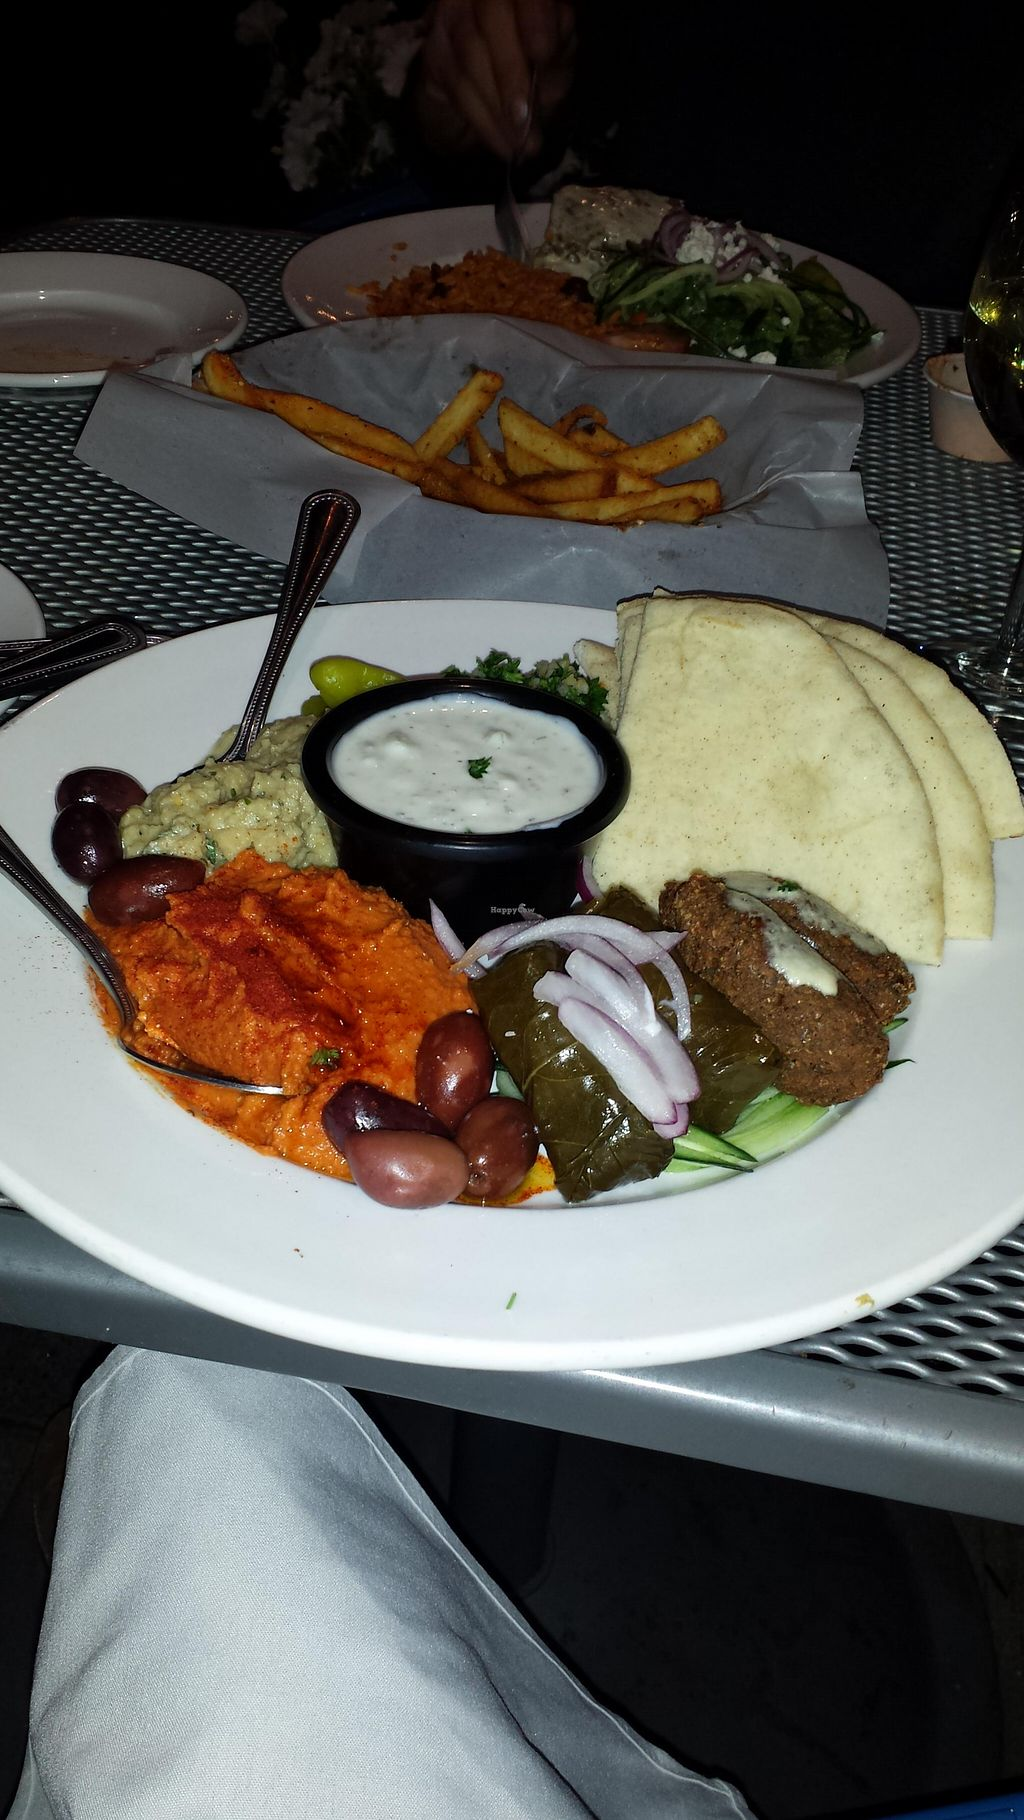 """Photo of Artemis Lakefront Cafe  by <a href=""""/members/profile/ciaoyoco"""">ciaoyoco</a> <br/>Assortment of great vagen appetizers  (except for the one in the center). The orange one has too much (probably ) paprika to my liking. But overall, great food <br/> August 8, 2015  - <a href='/contact/abuse/image/60978/112767'>Report</a>"""